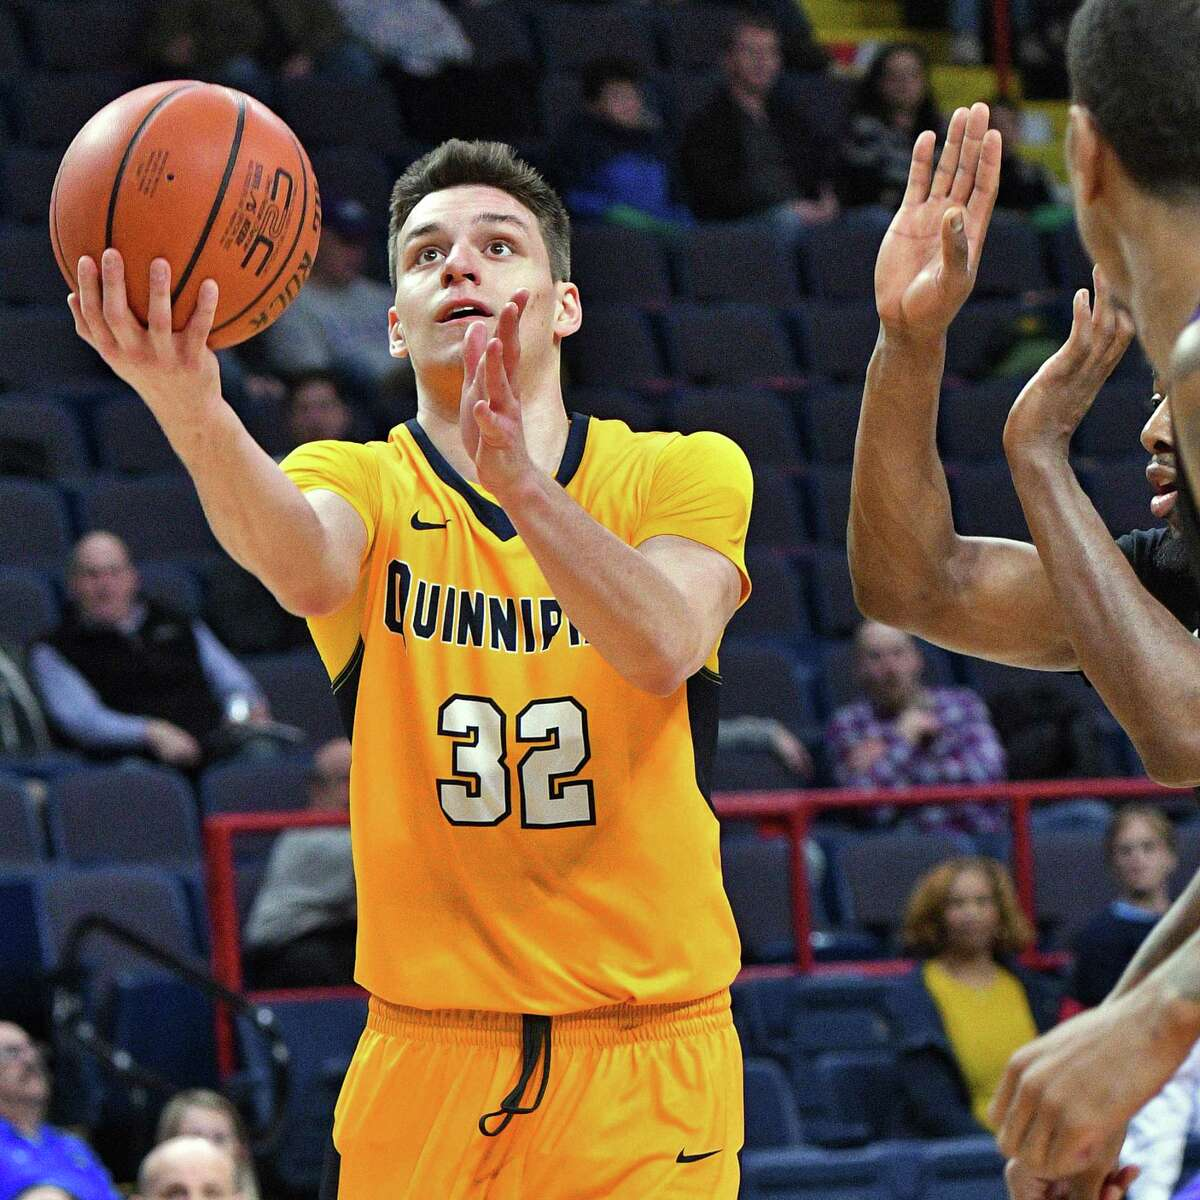 Quinnipiac's #32 Peter Kiss shoots during their first round MACC tourney game against Niagara at the Times Union Center Thursday March 2, 2017 in Albany, NY. (John Carl D'Annibale / Times Union)